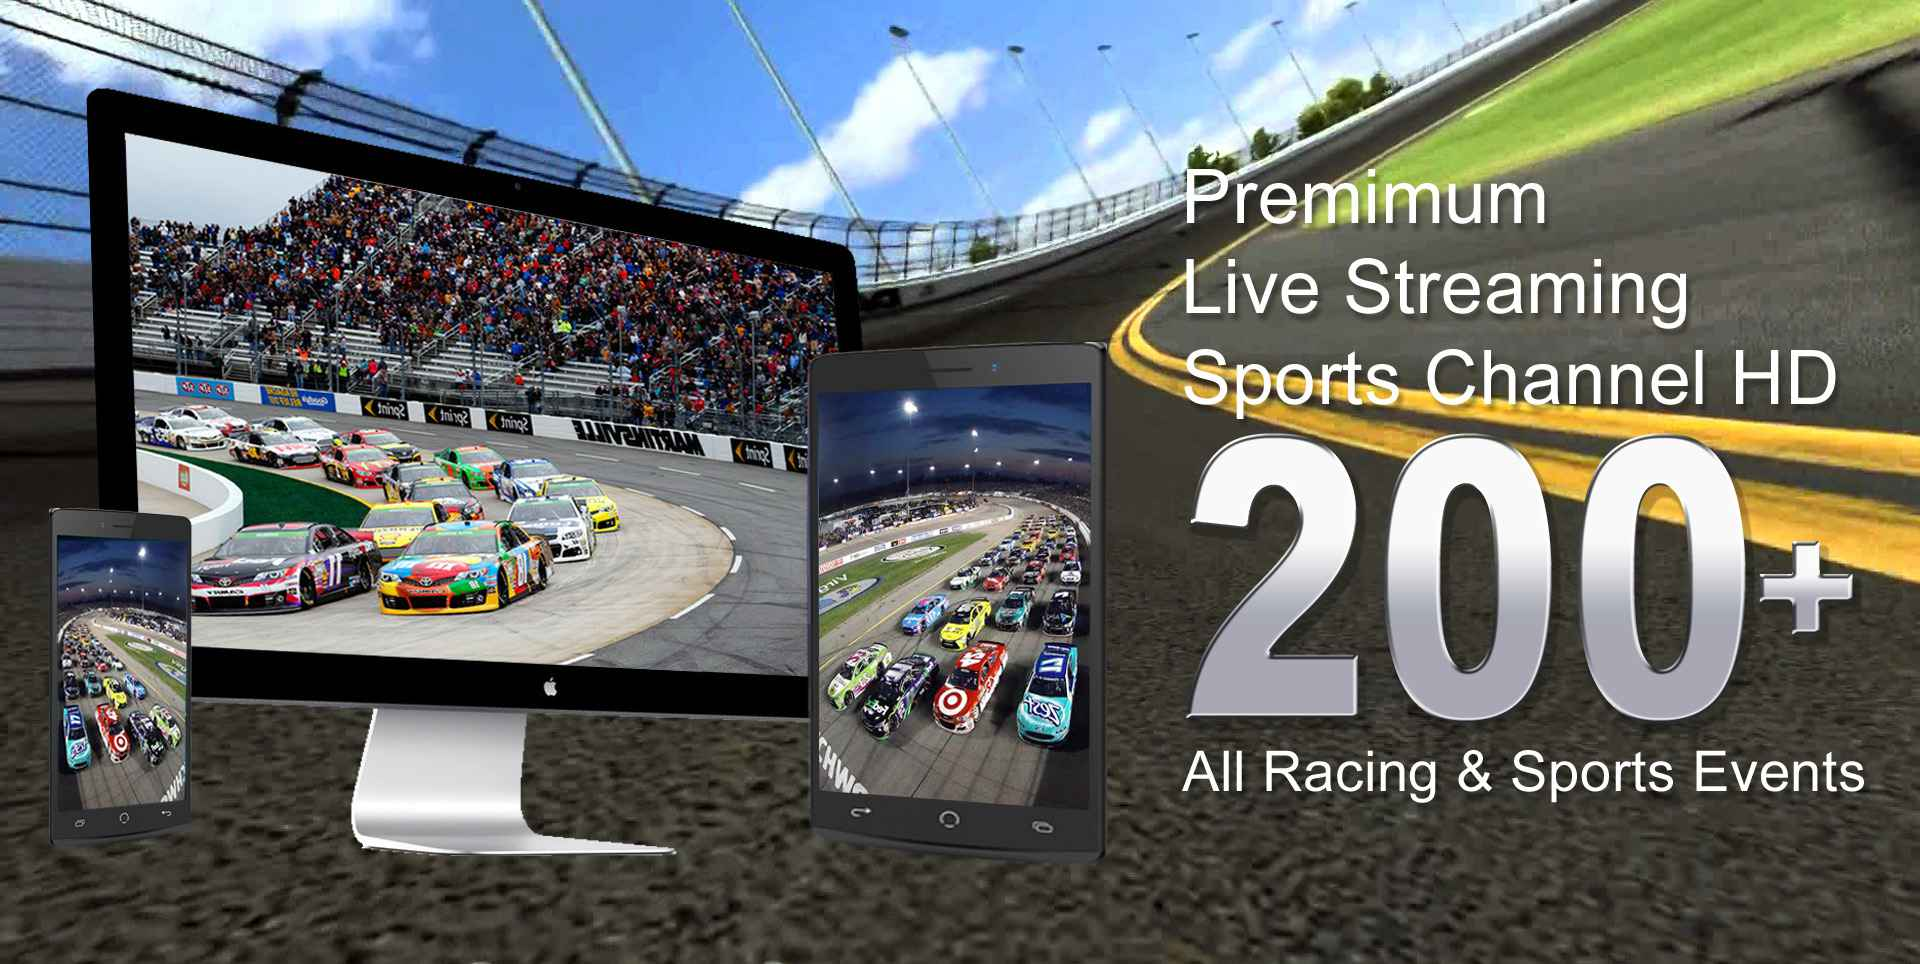 2017 Monster Energy NASCAR AAA 400 Drive for Autism Race Results